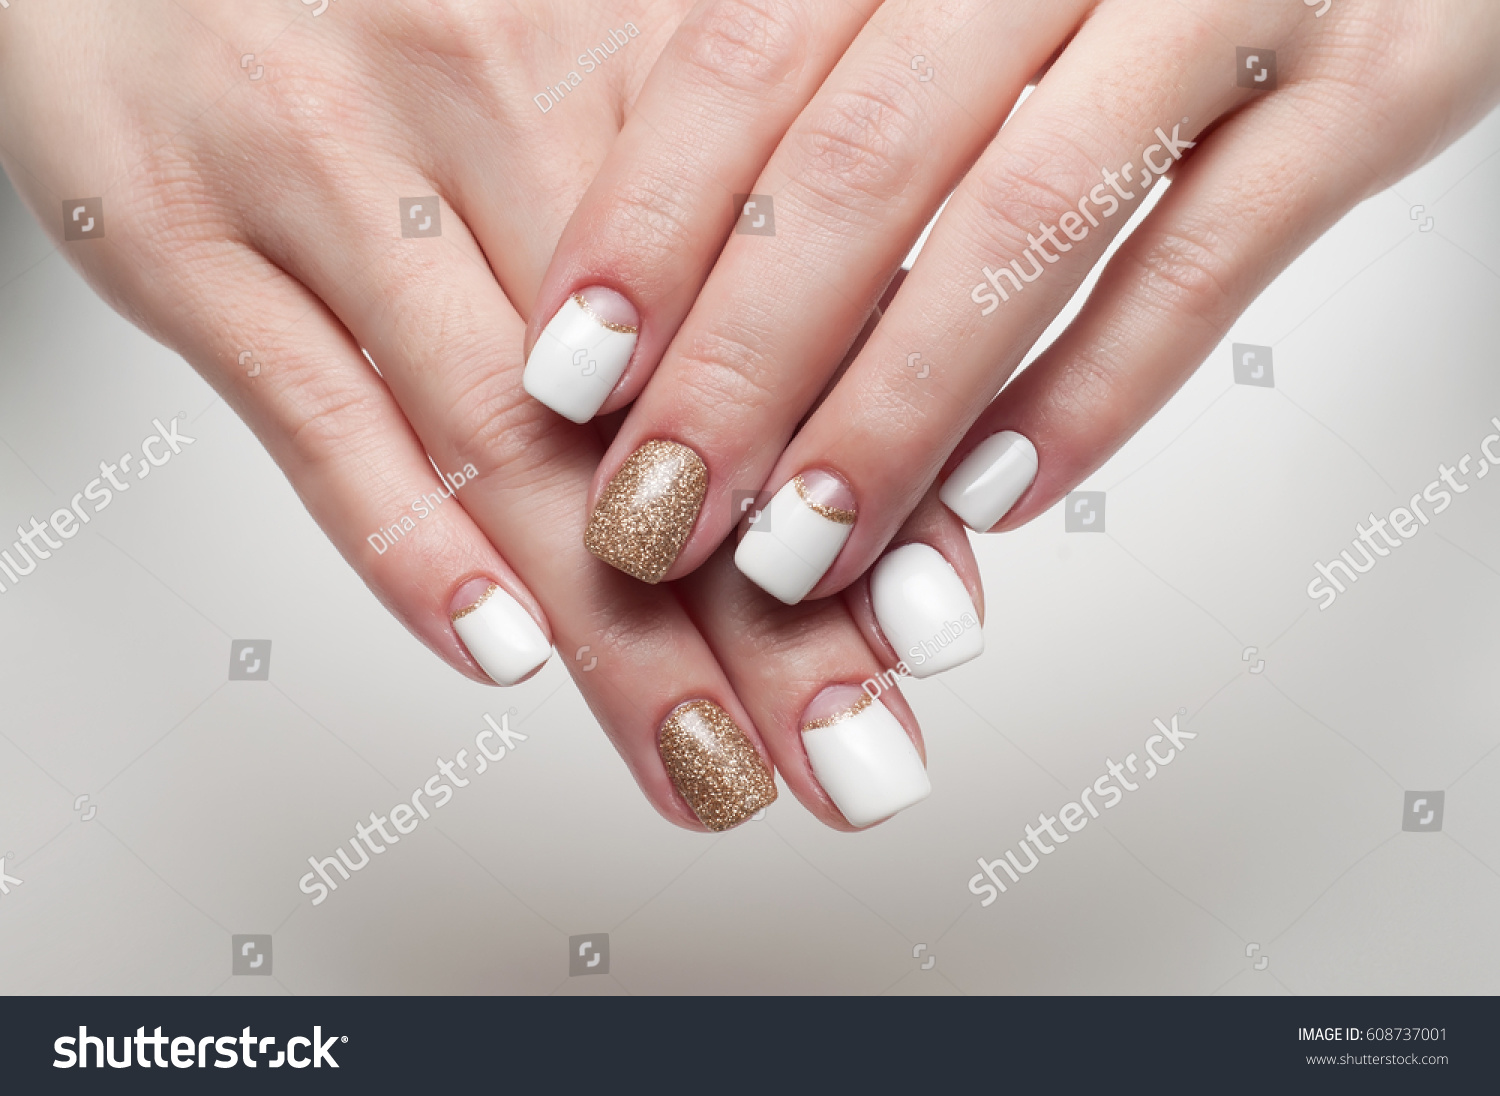 White Golden Manicure On Square Long Stock Photo (100% Legal ...